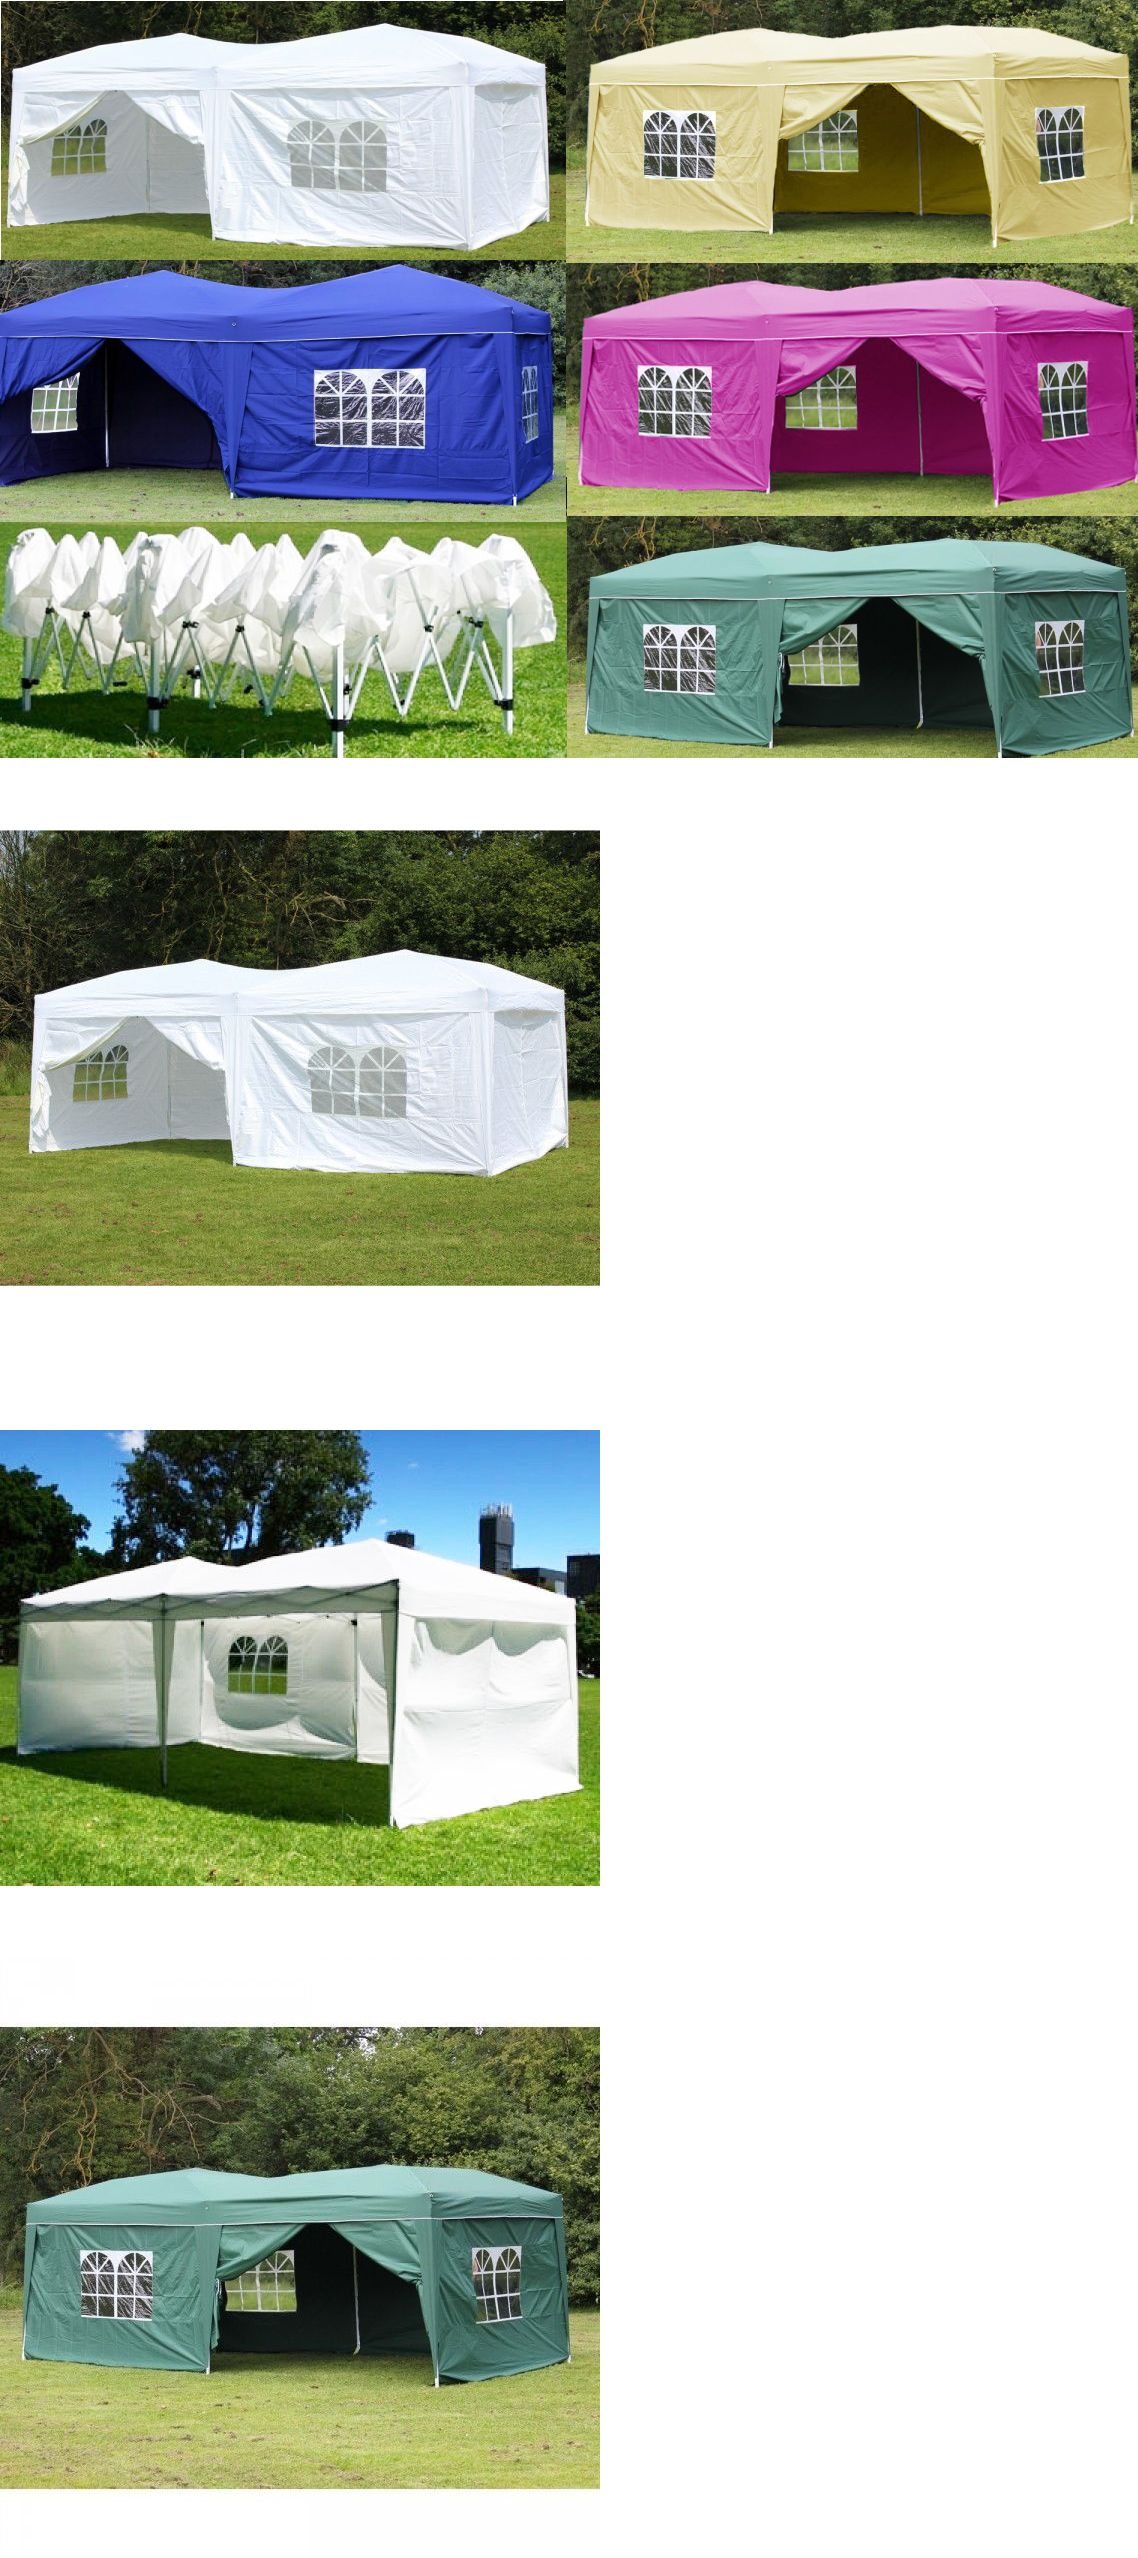 Awnings And Canopies 180992 10x20 Outdoor Ez Pop Up Tent Folding